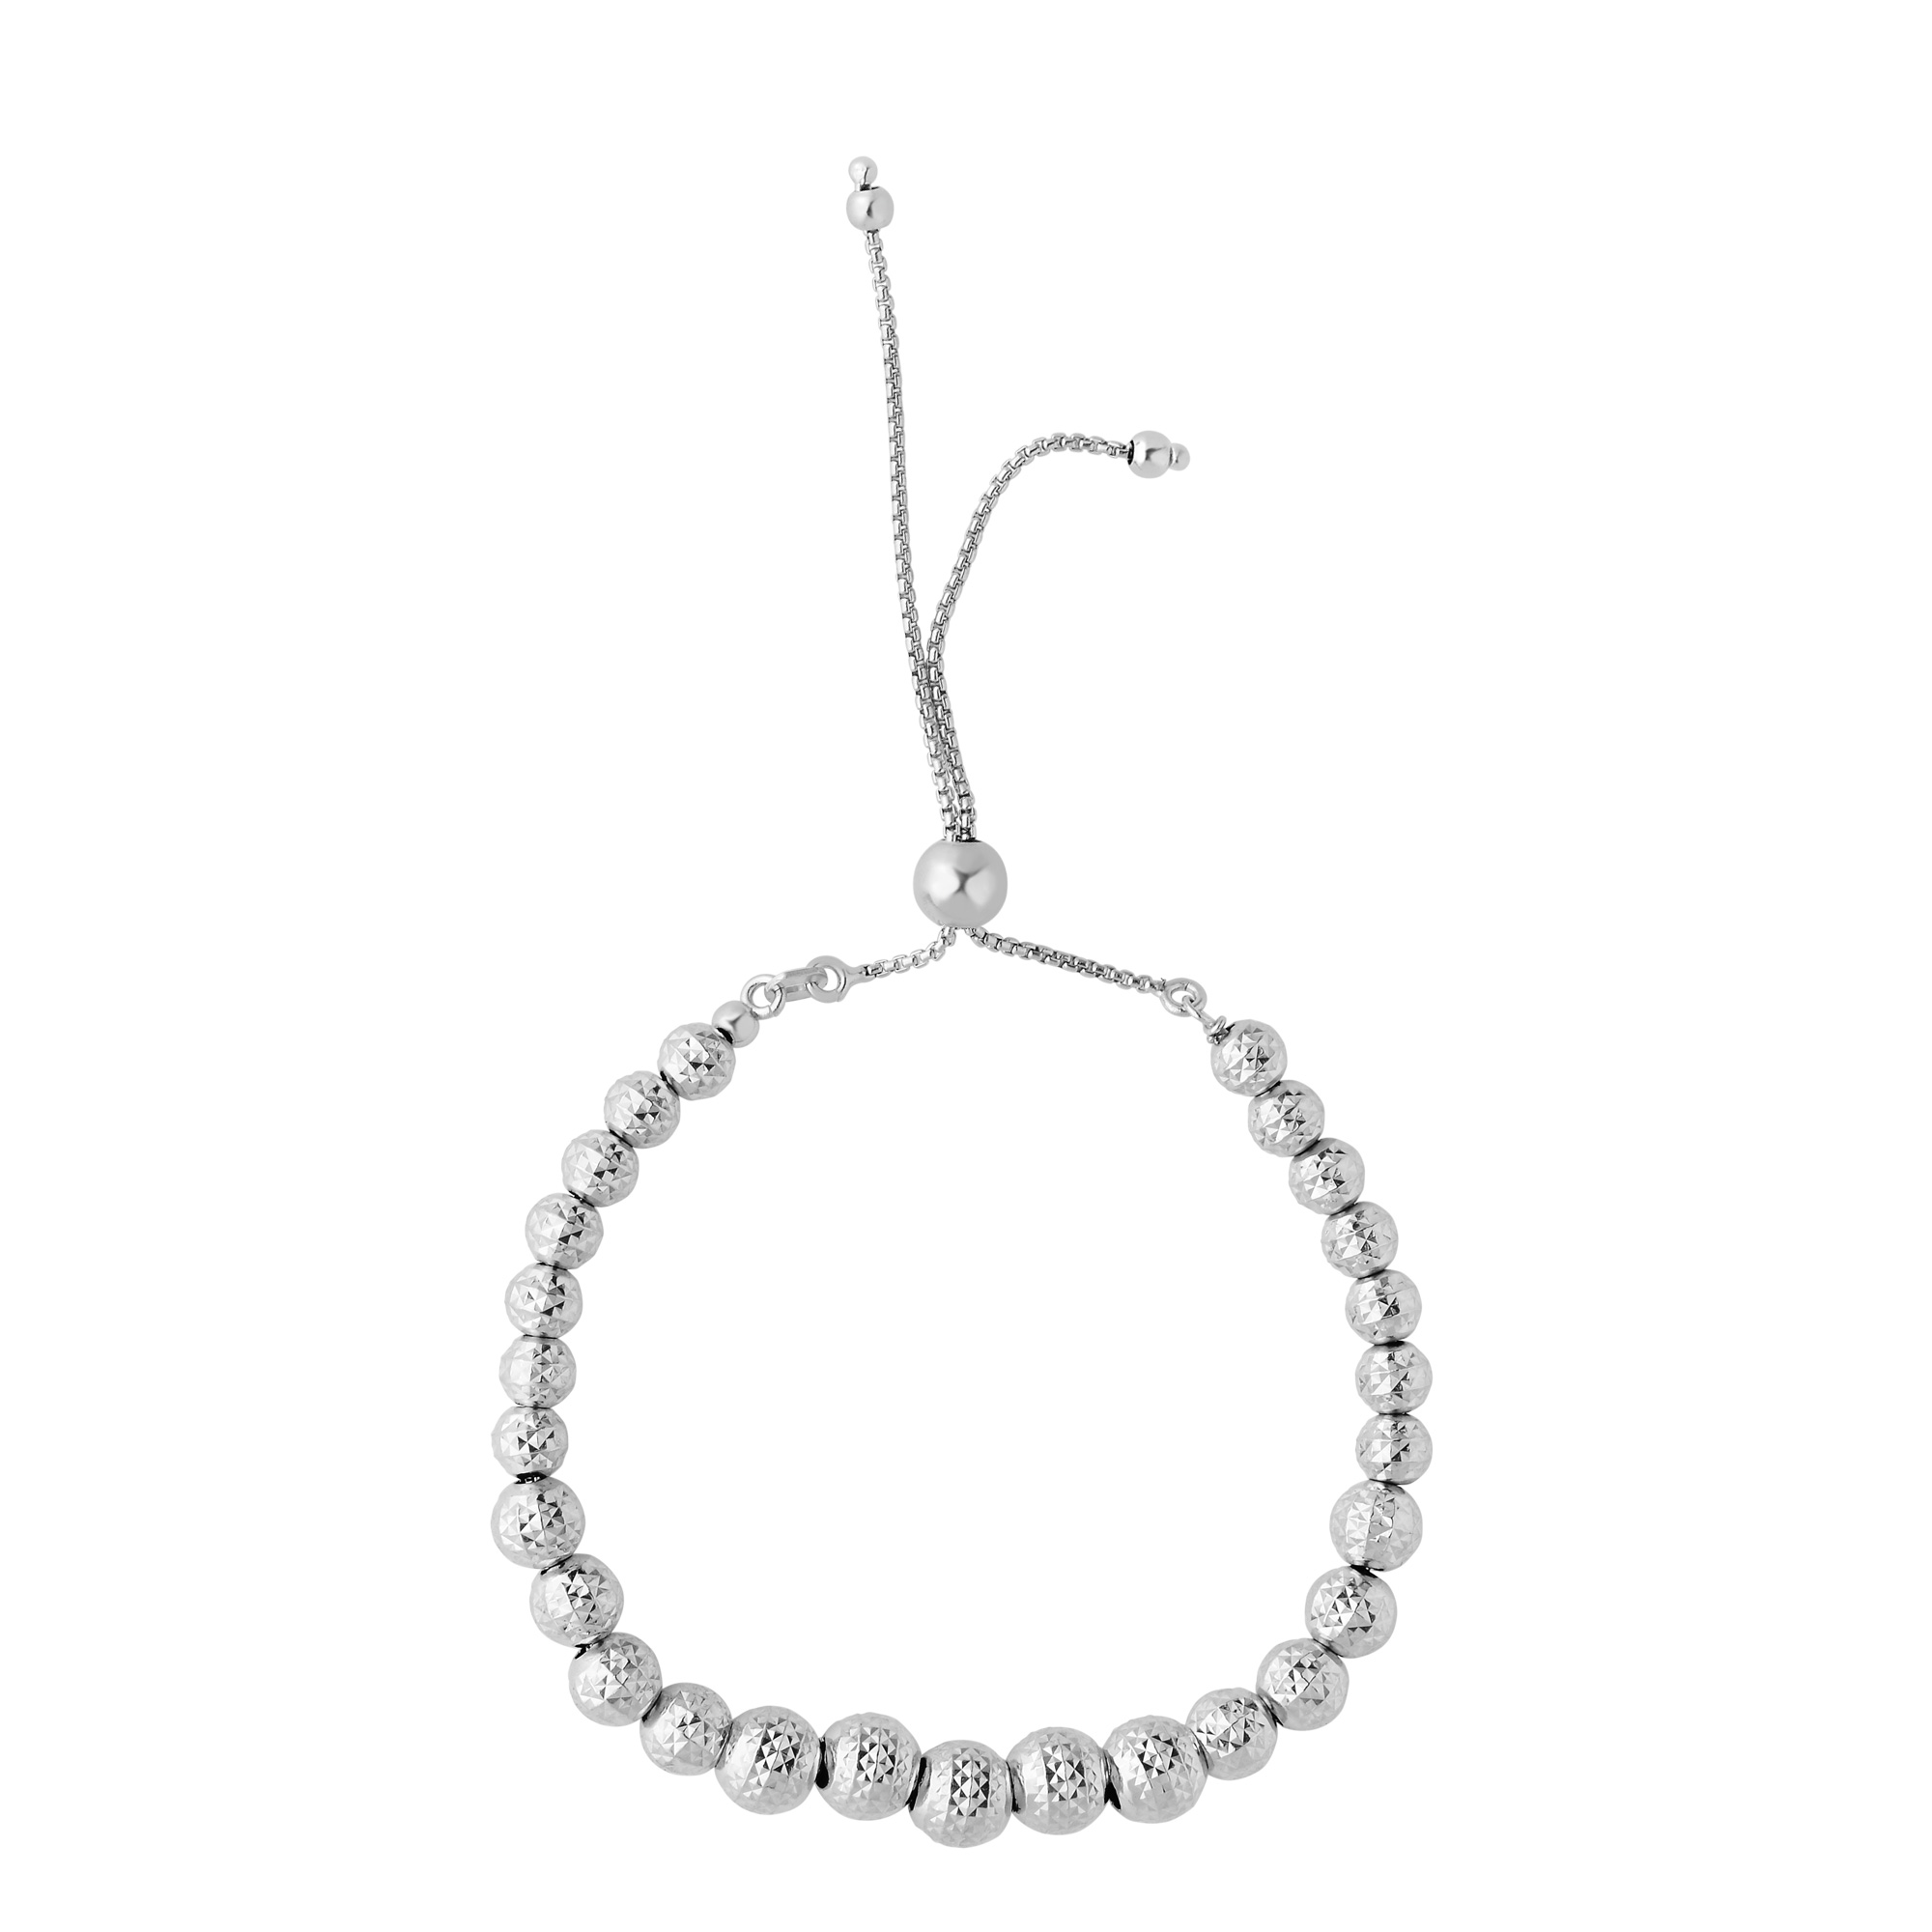 Sterling Silver Diamond Cut Graduated Beads Adjustable Bolo Friendship Bracelet , 9.25  Designed for today's fast-moving, contemporary woman, the Friendship bracelets are smart, stylish and easy to wear. Meticulously executed in high quality Rhodium plated sterling silver, these iconic bracelets are easily adjusted to fit any wrist. The Adjustable sliding closure allows you to go from 9.25 inches length to as small as allowed by the design.  Each unique style of our Friendship collection looks beautiful worn as one piece alone or stacked with multiple styles for a layered and modern look. The bracelet comes in an elegant jewelry gift box, perfect for any gift giving occasion.